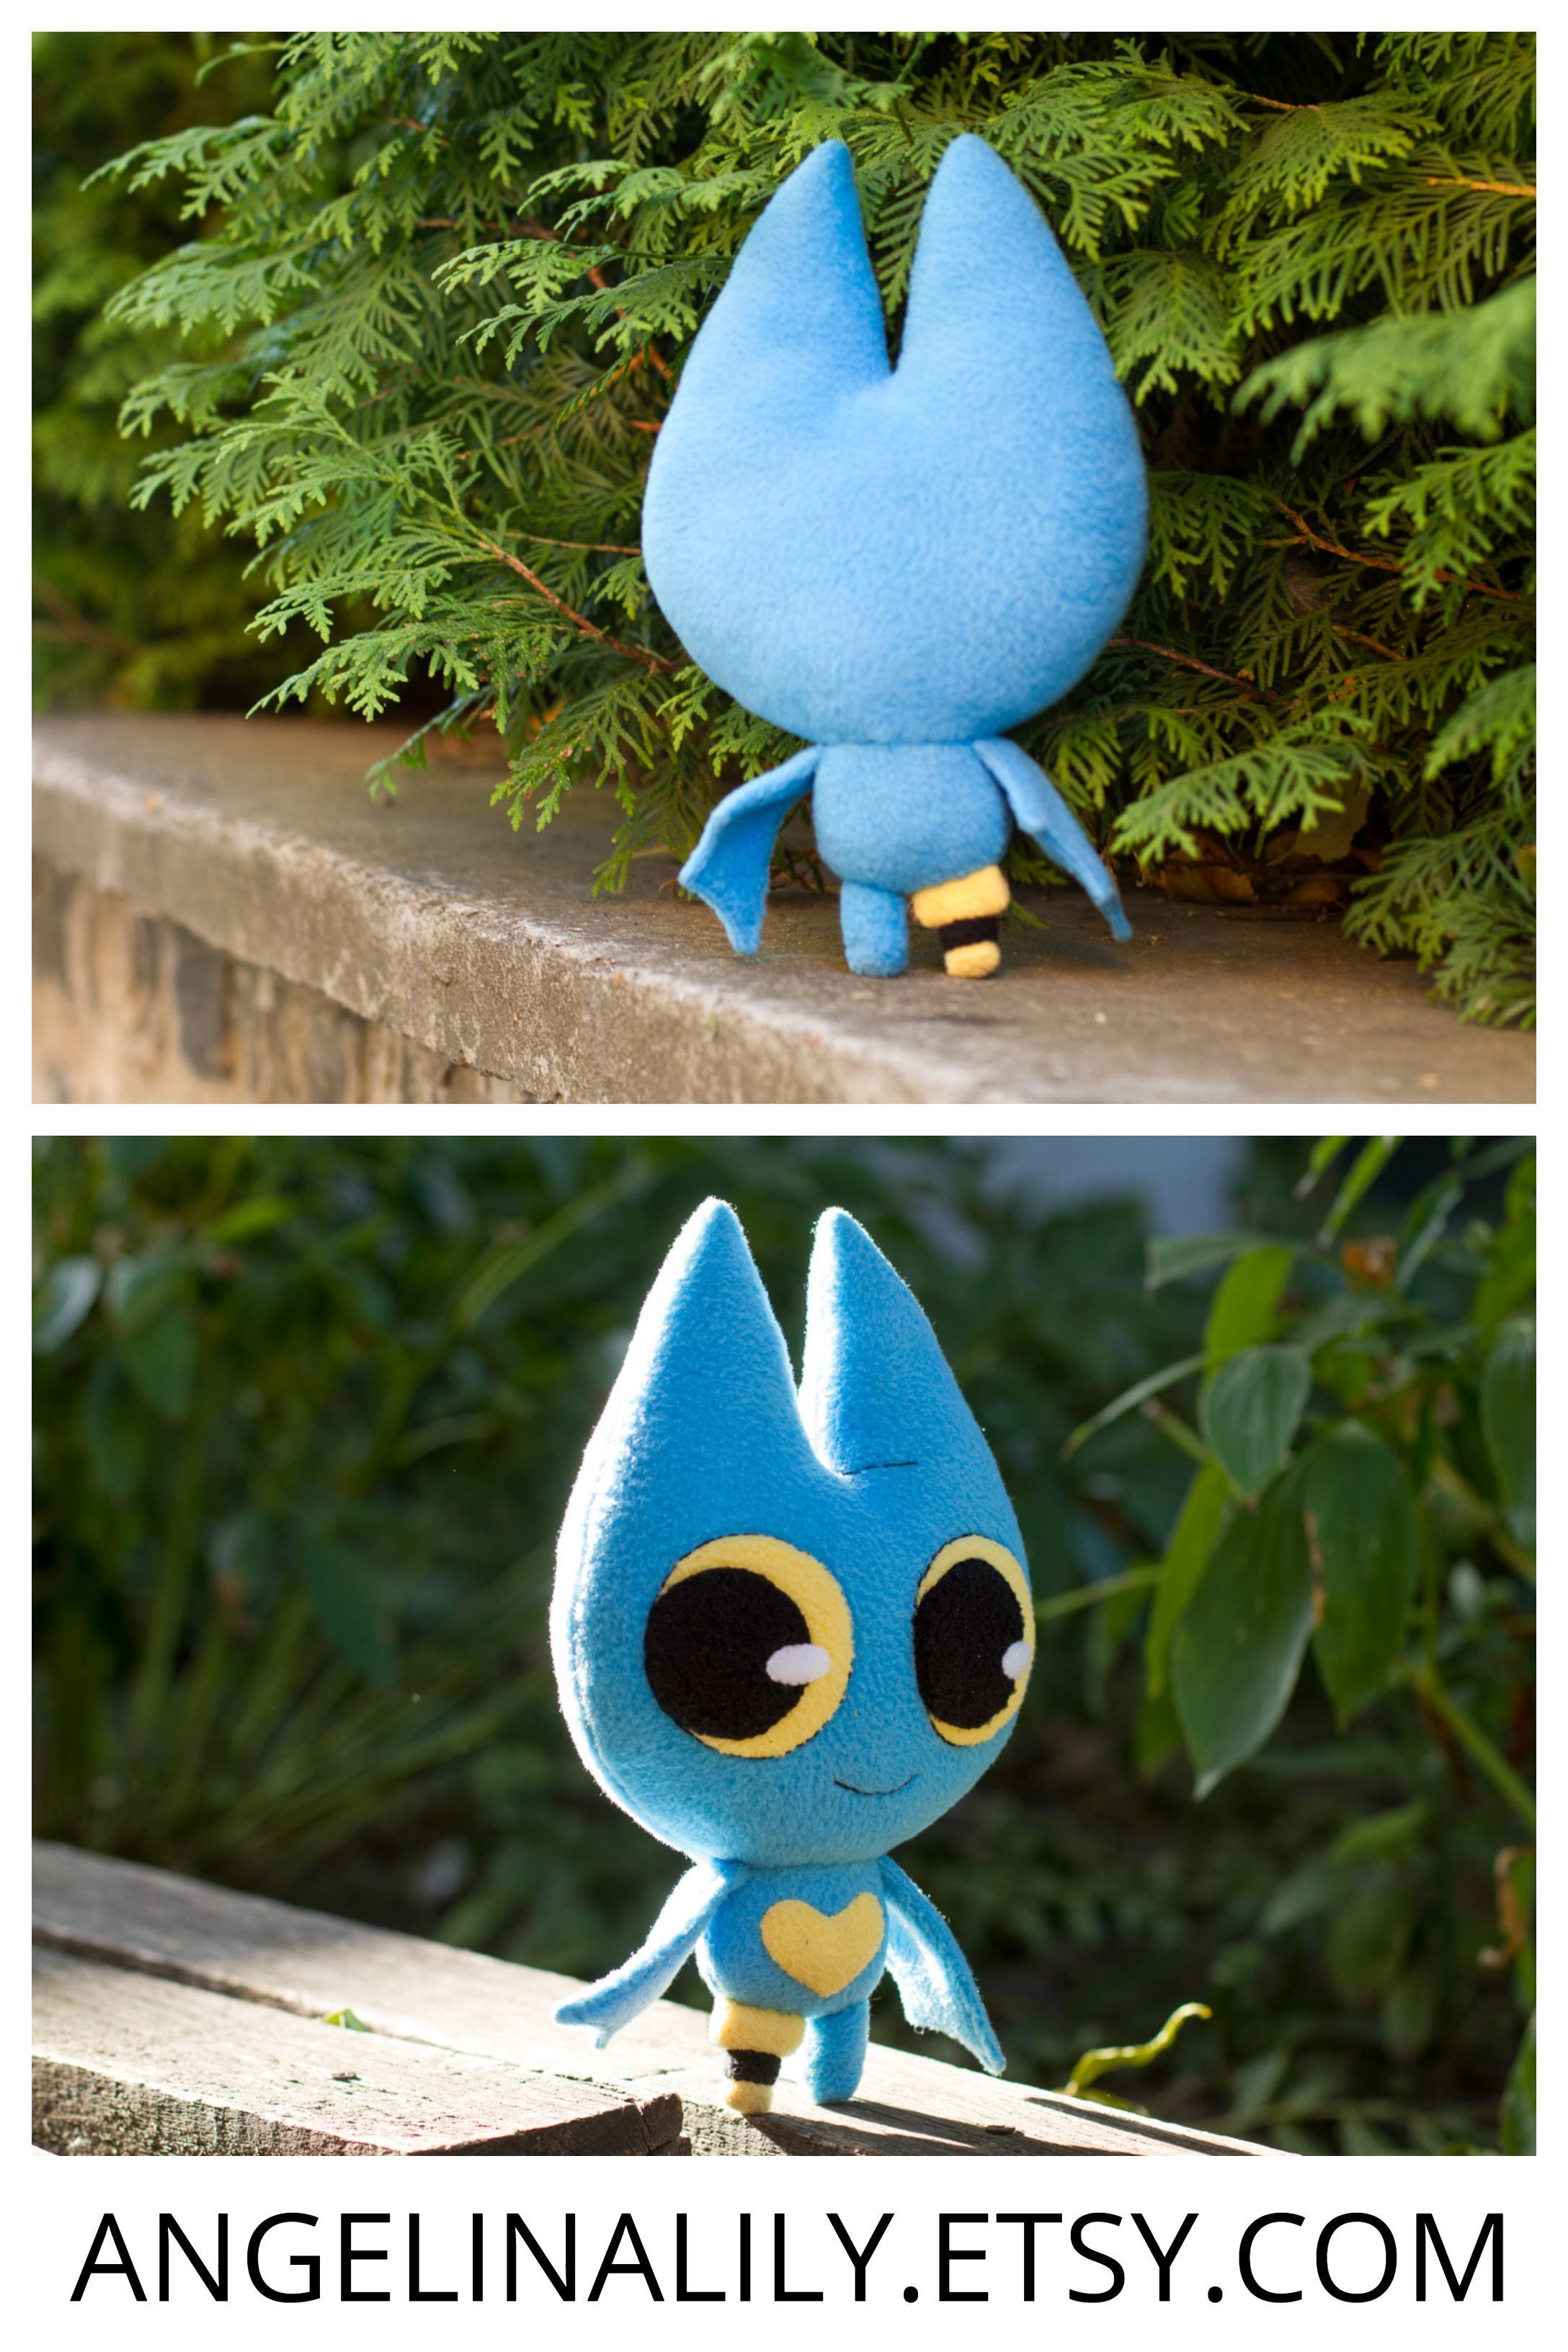 Pin On Isabelle Adorabat is the most adorable. pinterest